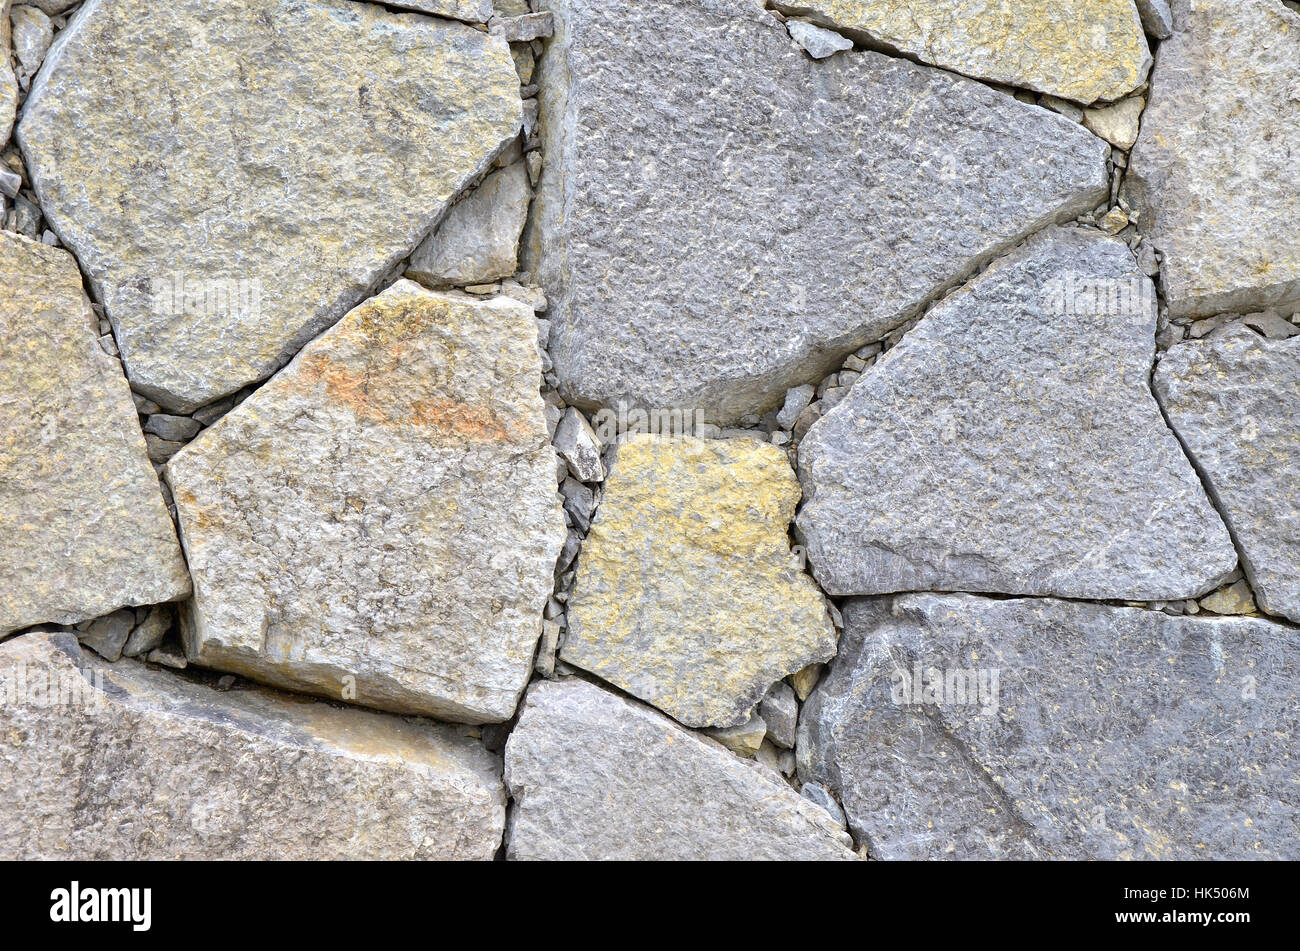 stones and fragments of granite - Stock Image